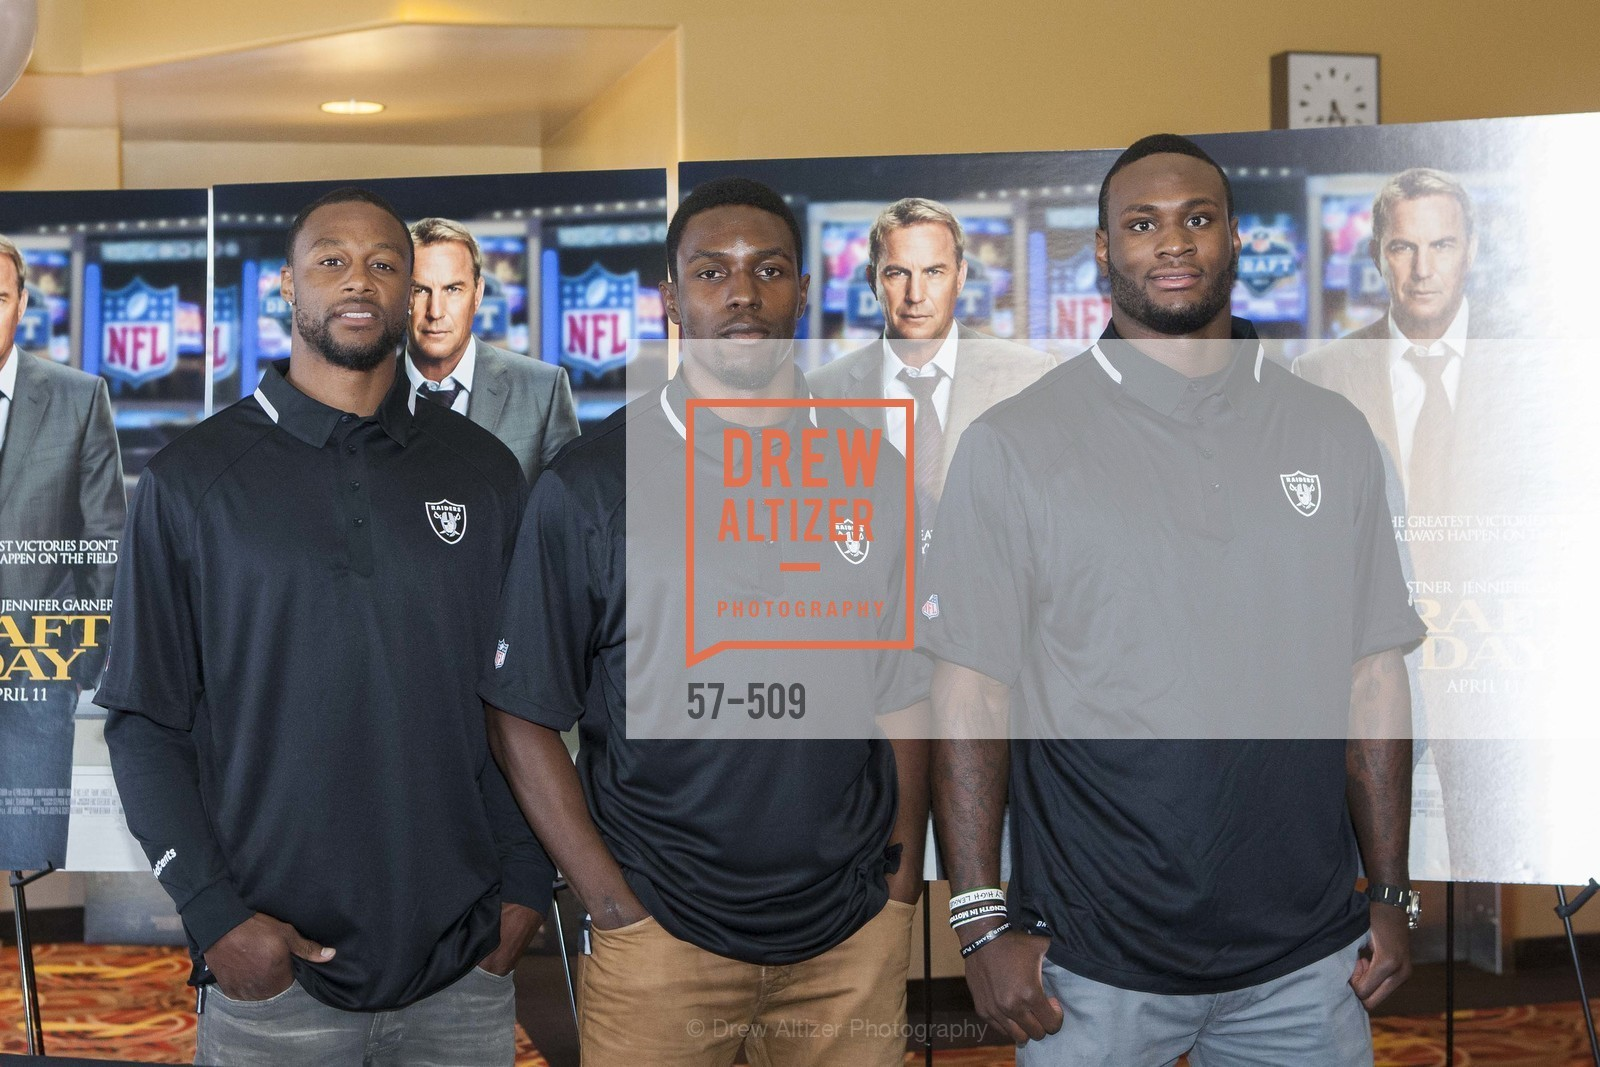 Taiwan Jones, Chimdi Chekwa, Latavius Murray, SUMMIT ENTERTAINMENT Presents a Special Screening of DRAFT DAY with the Oakland Raiders, US. AMC 16 Shellmound, Emeryville, Ca, April 9th, 2014,Drew Altizer, Drew Altizer Photography, full-service agency, private events, San Francisco photographer, photographer california